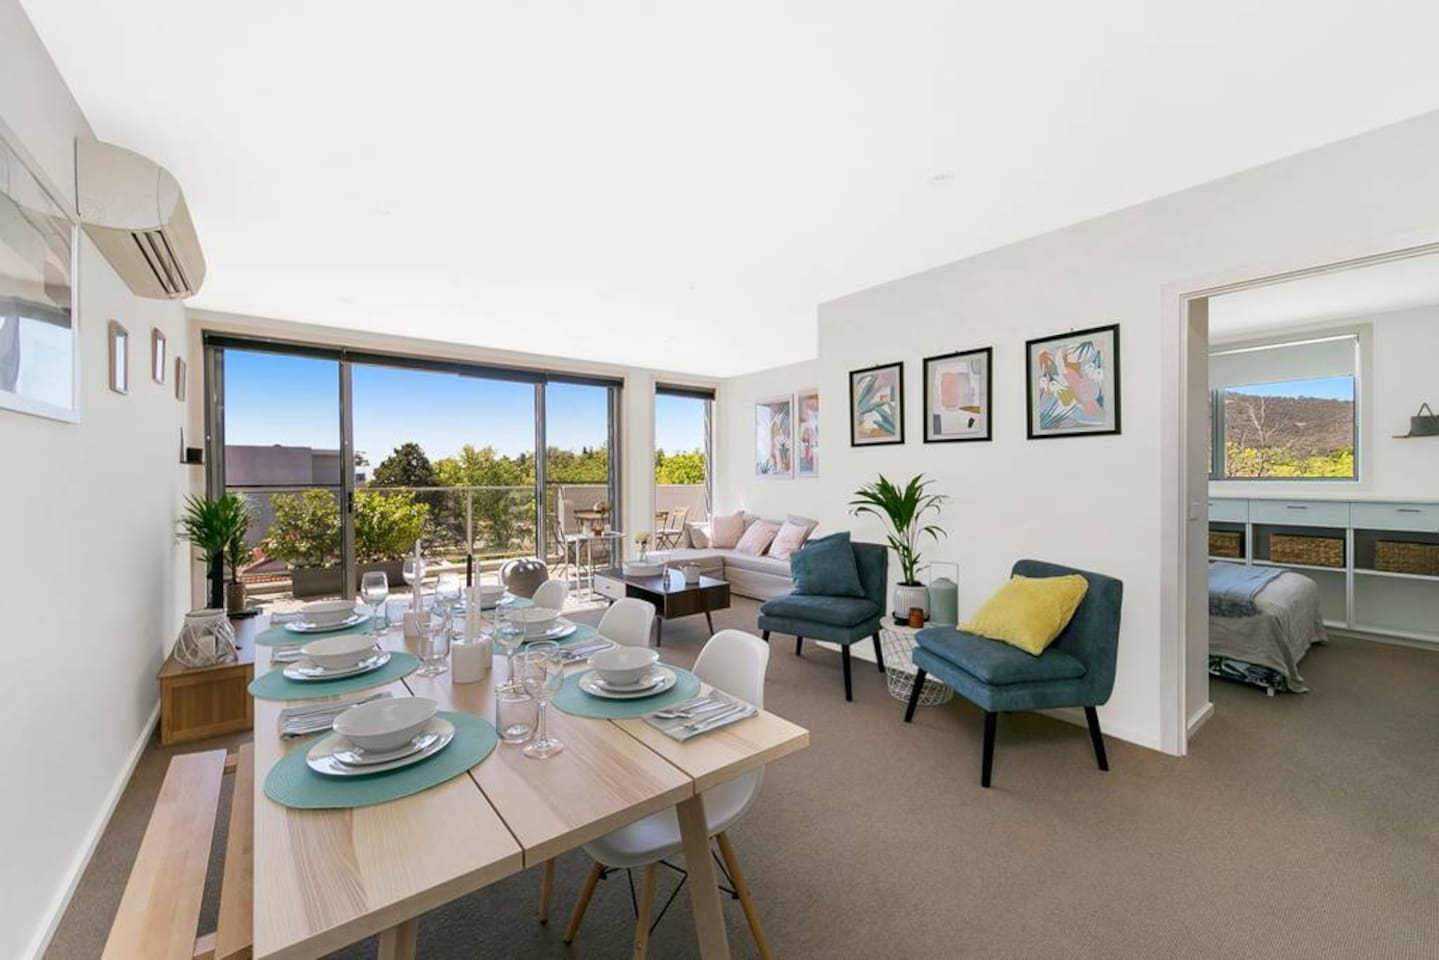 canberra accommodation airbnb